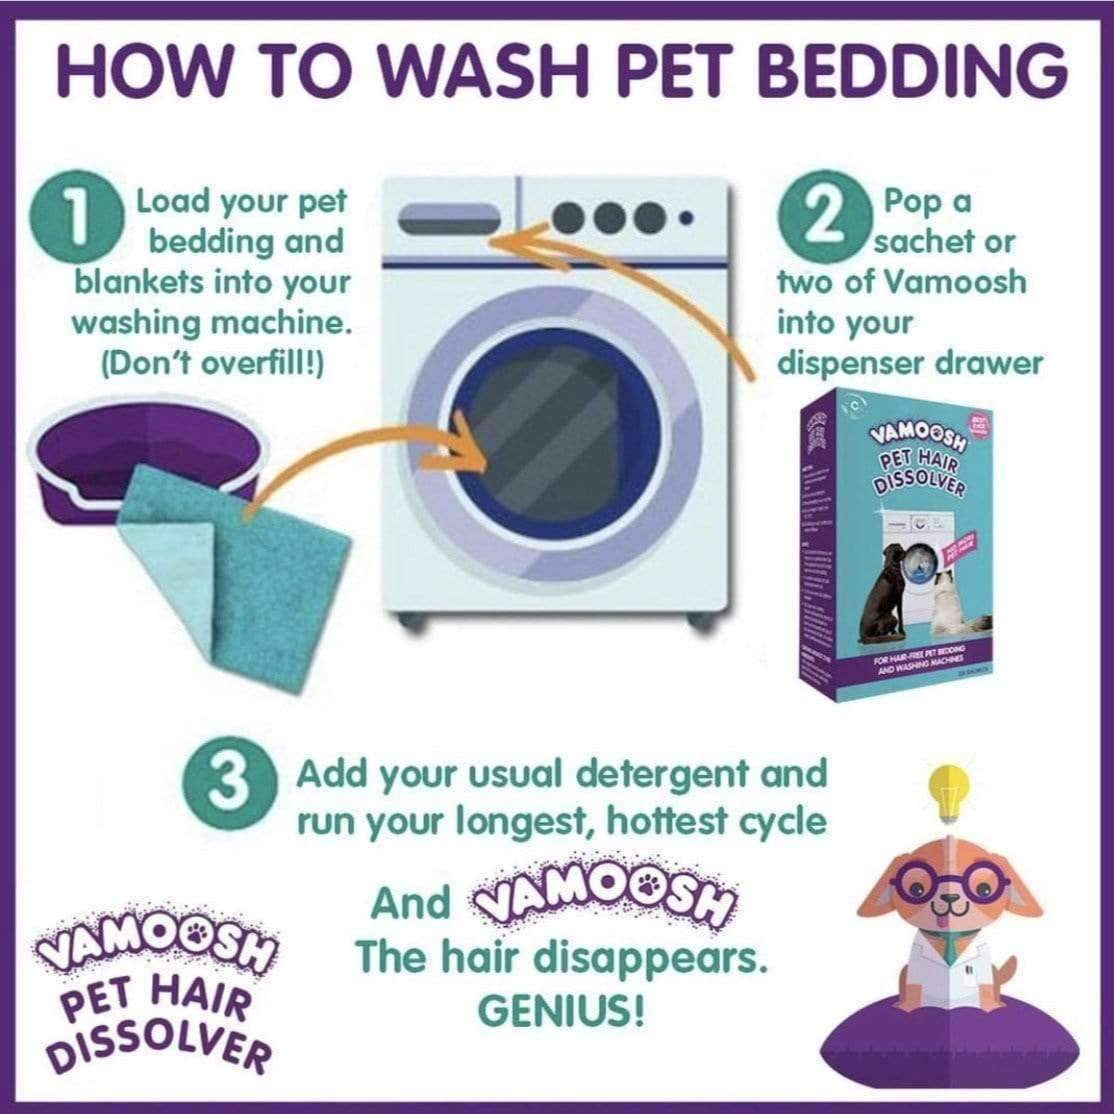 How to wash pet bedding with Vamoosh!